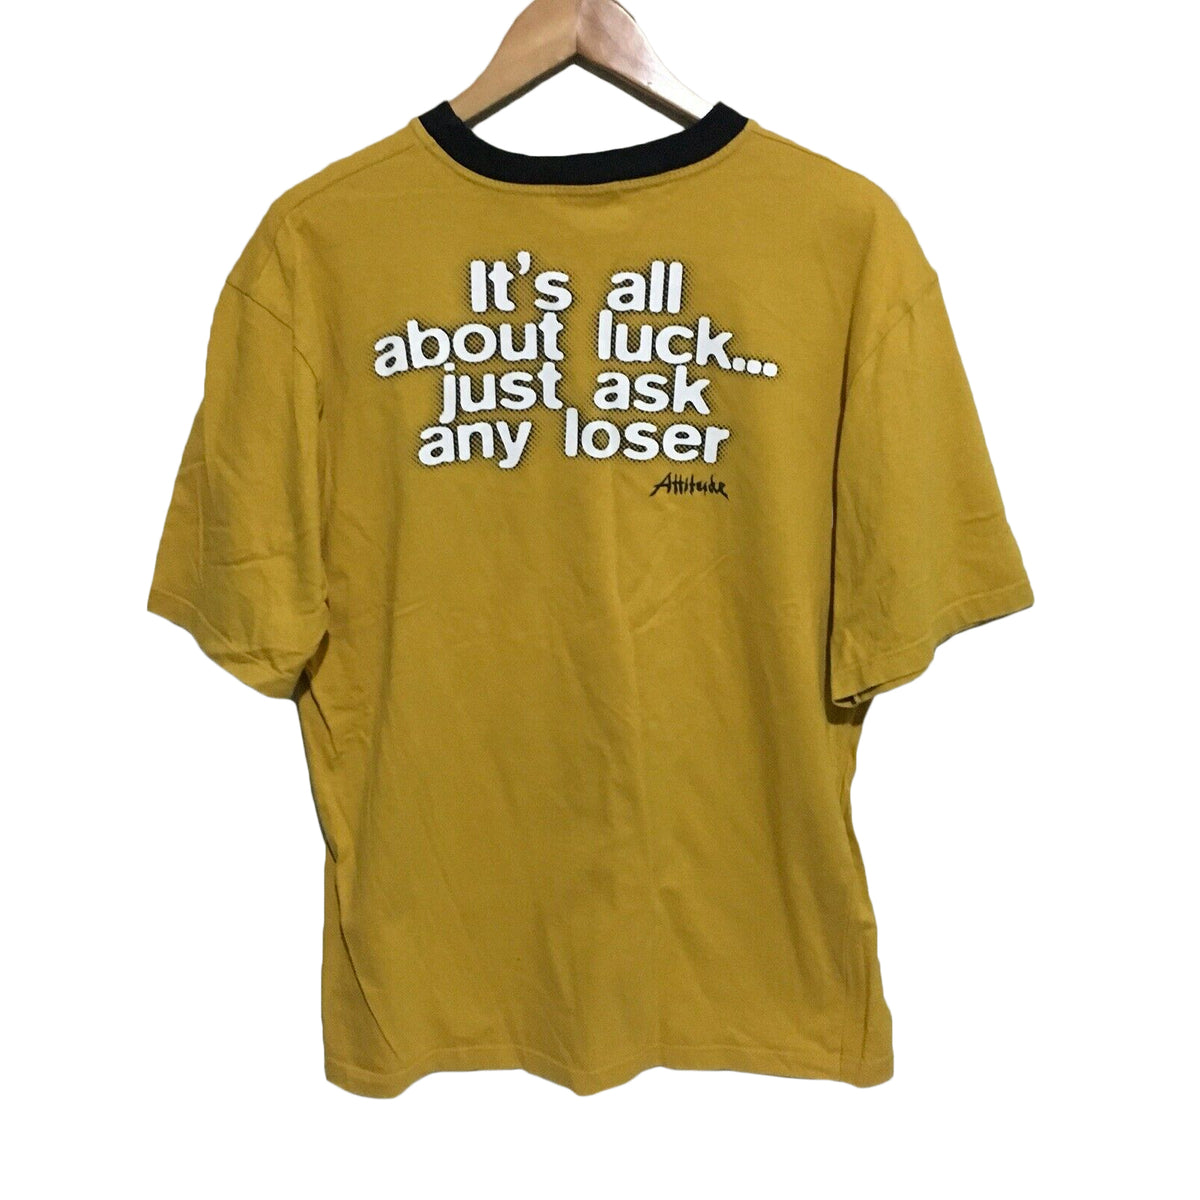 It's All About Luck Just Ask Any Loser Attitude Vintage T-Shirt Mens Large